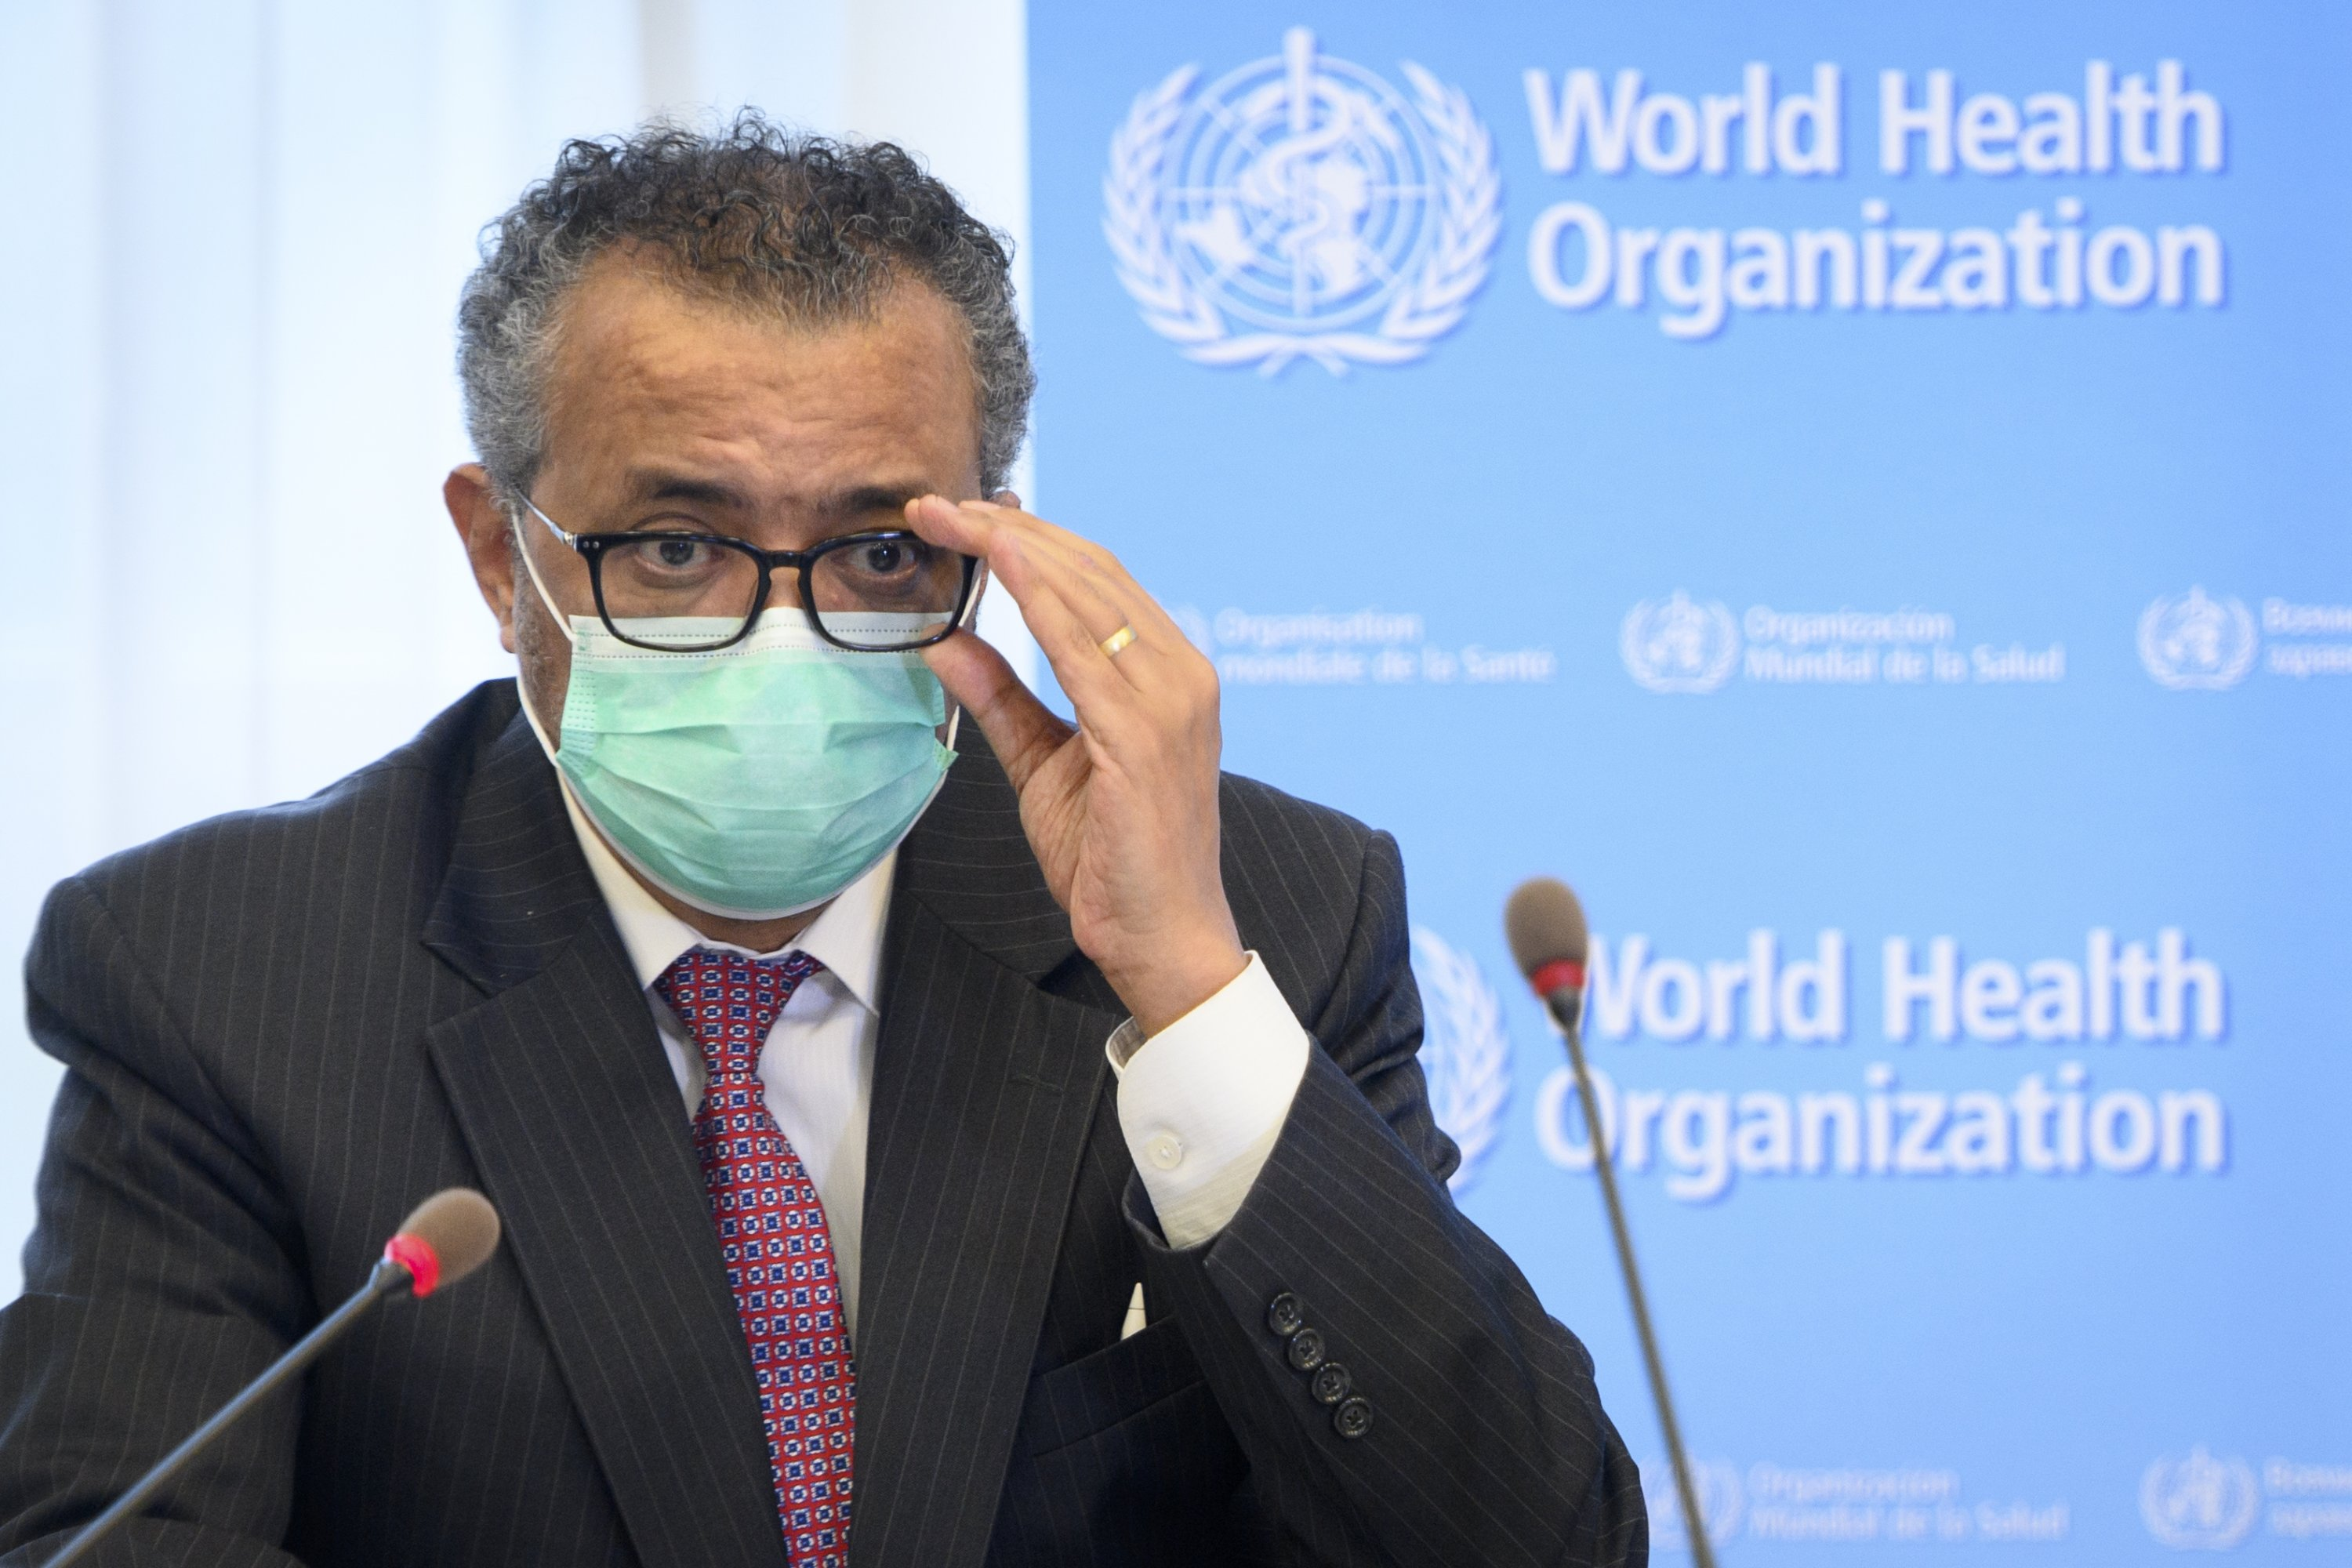 Tedros Adhanom Ghebreyesus, director-general of the World Health Organization (WHO) speaks during a bilateral meeting with Swiss Interior and Health Minister Alain Berset, not pictured, before signing a BioHub Initiative with a global COVID-19 Pathogen repository in Spiez laboratory on the sideline of the opening of the 74th World Health Assembly, WHA, at the WHO headquarters, in Geneva, Switzerland, May 24, 2021. (Laurent Gillieron/Keystone via AP)